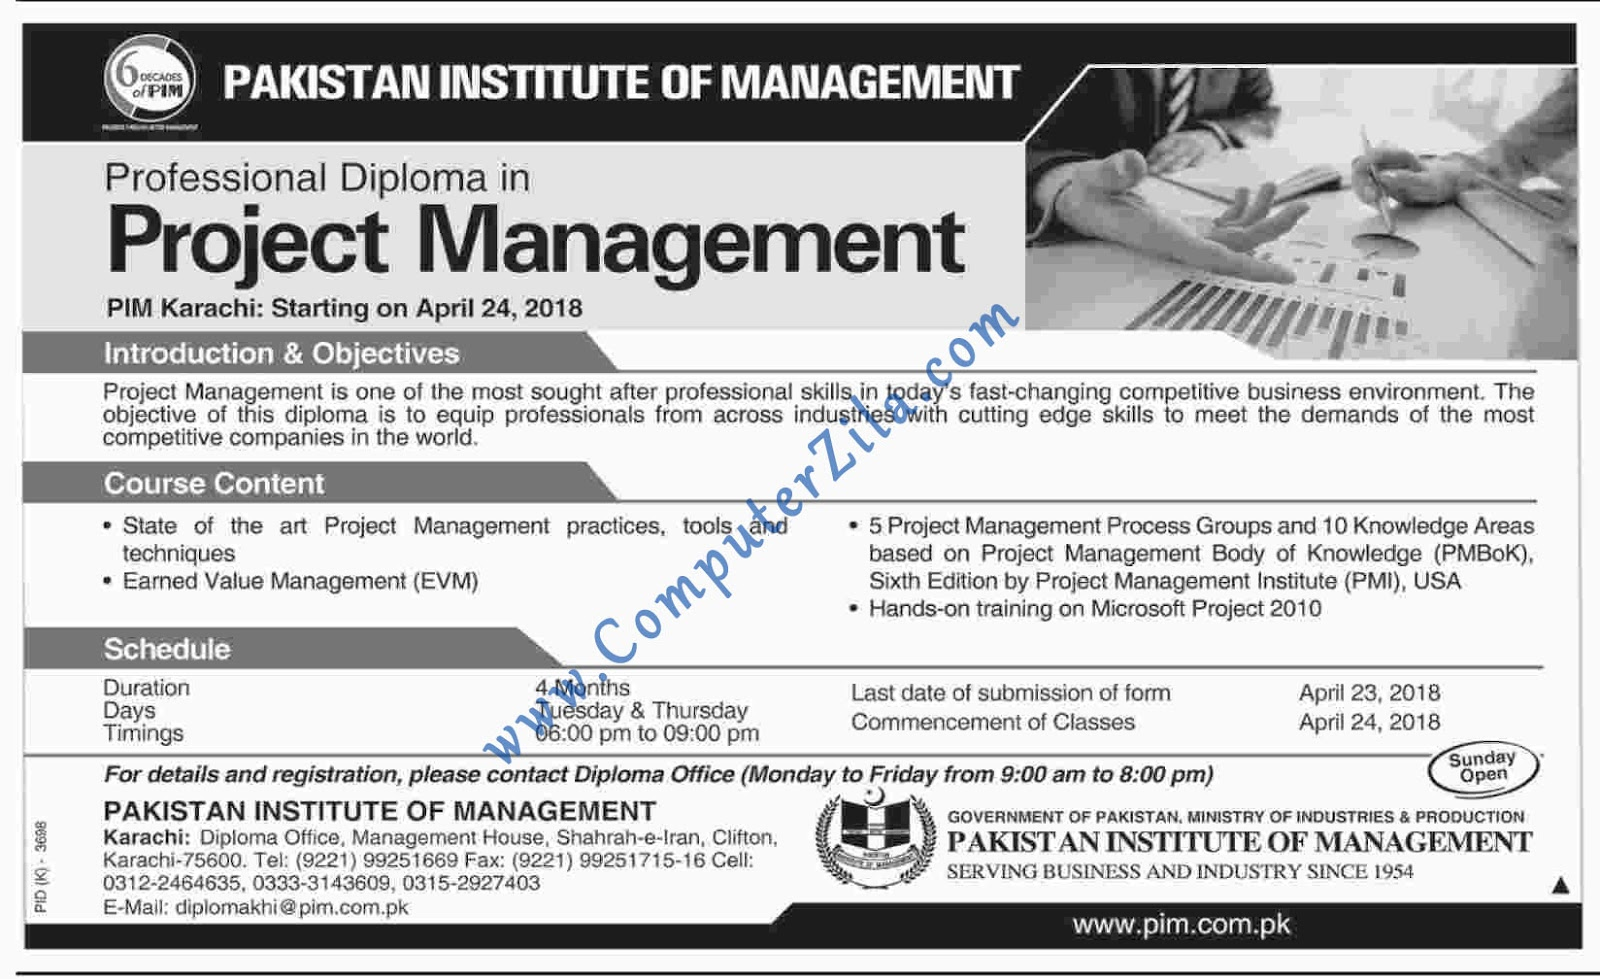 Pakistan Institute of Management Admissions Spring 2018